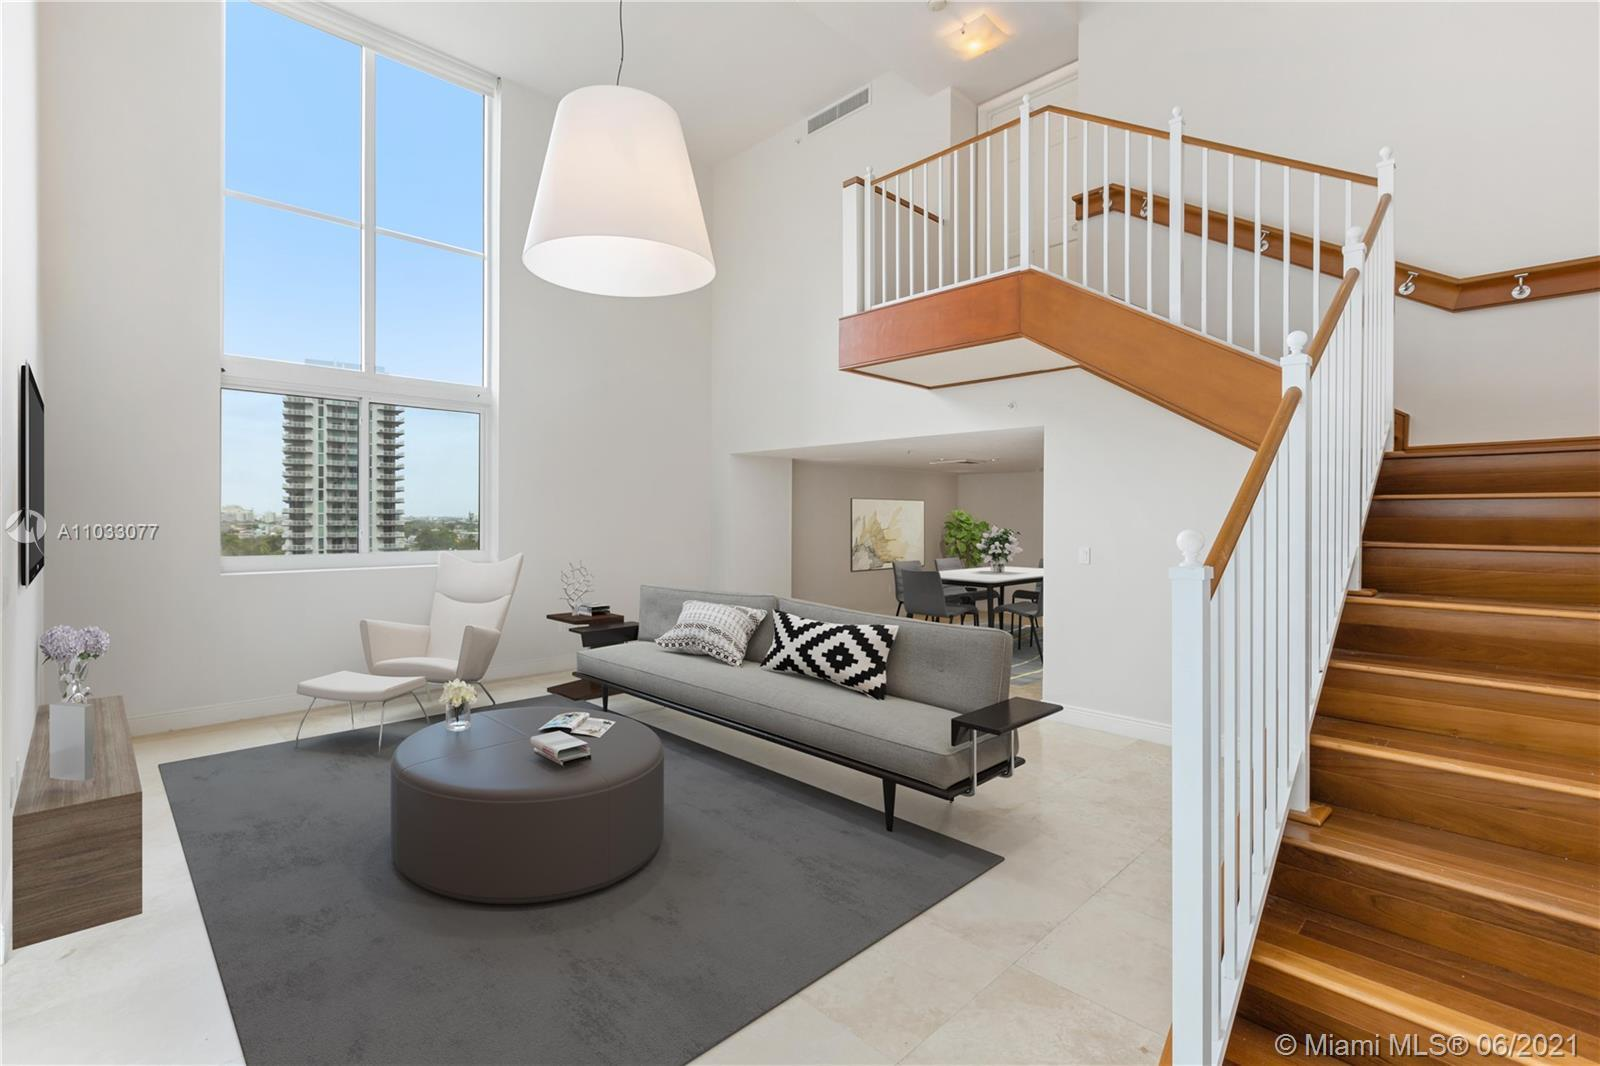 Live in Edgewater with beautiful views in this spectacular 3 bedroom 3.5 bath unit with views of Bis